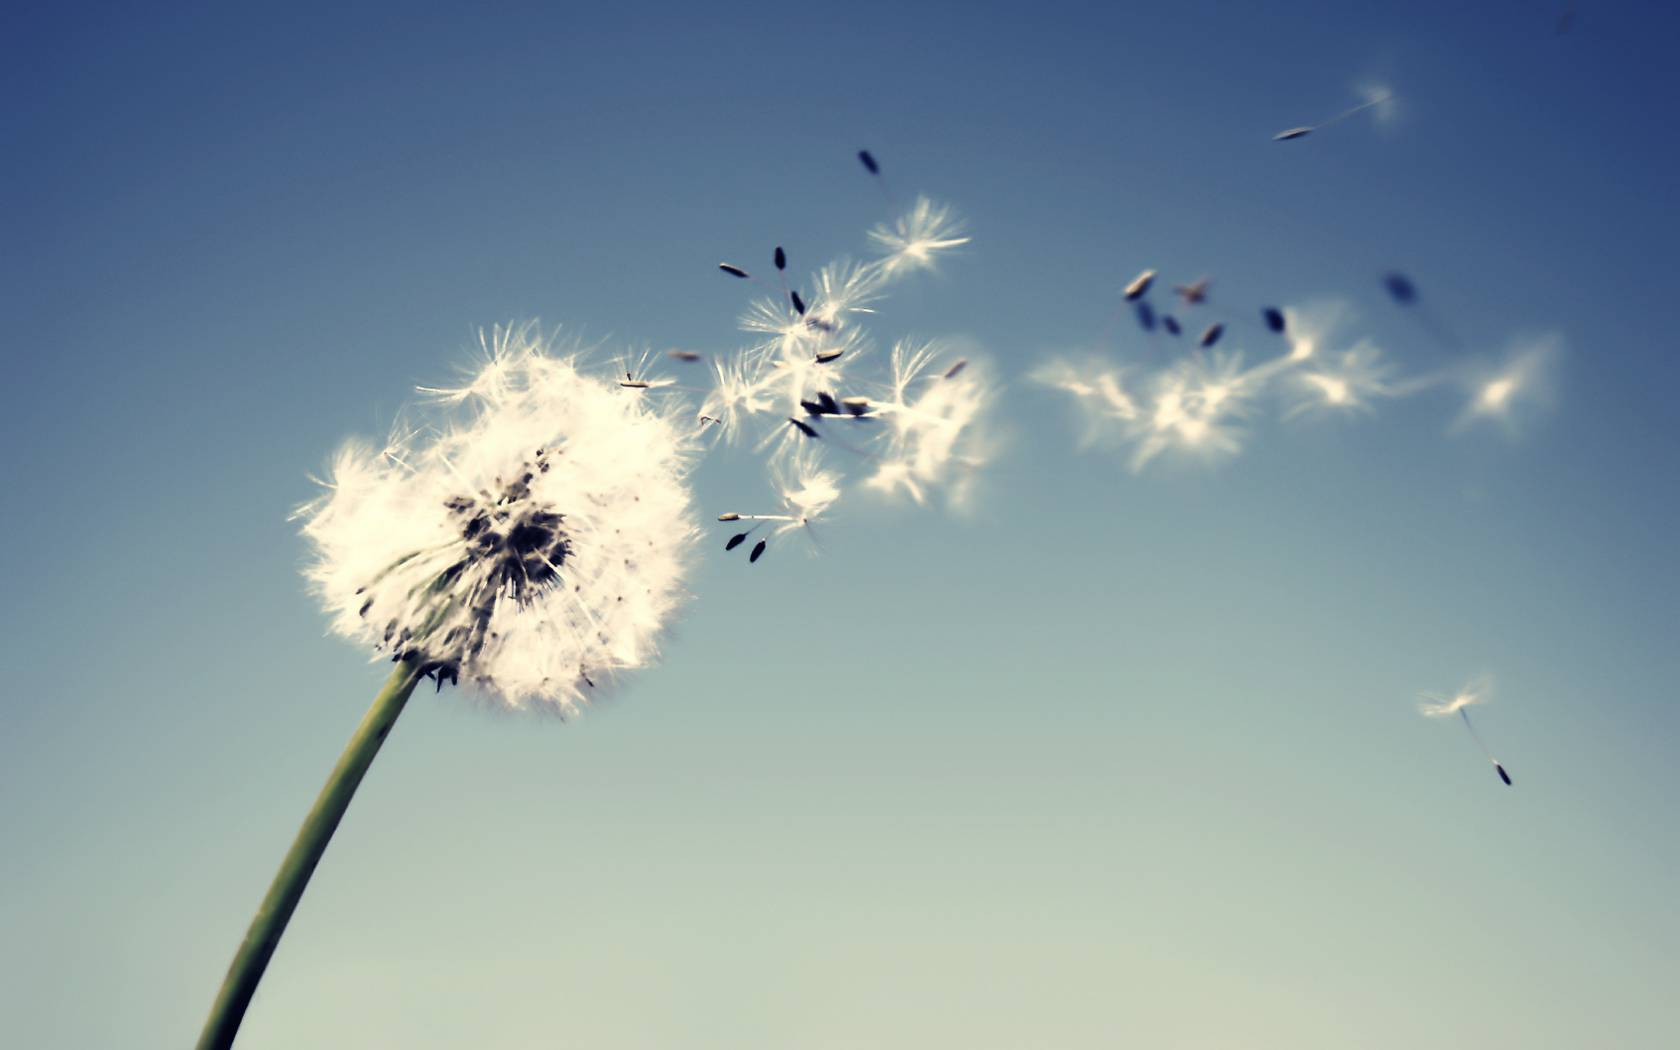 Related Wallpapers: Dandelion